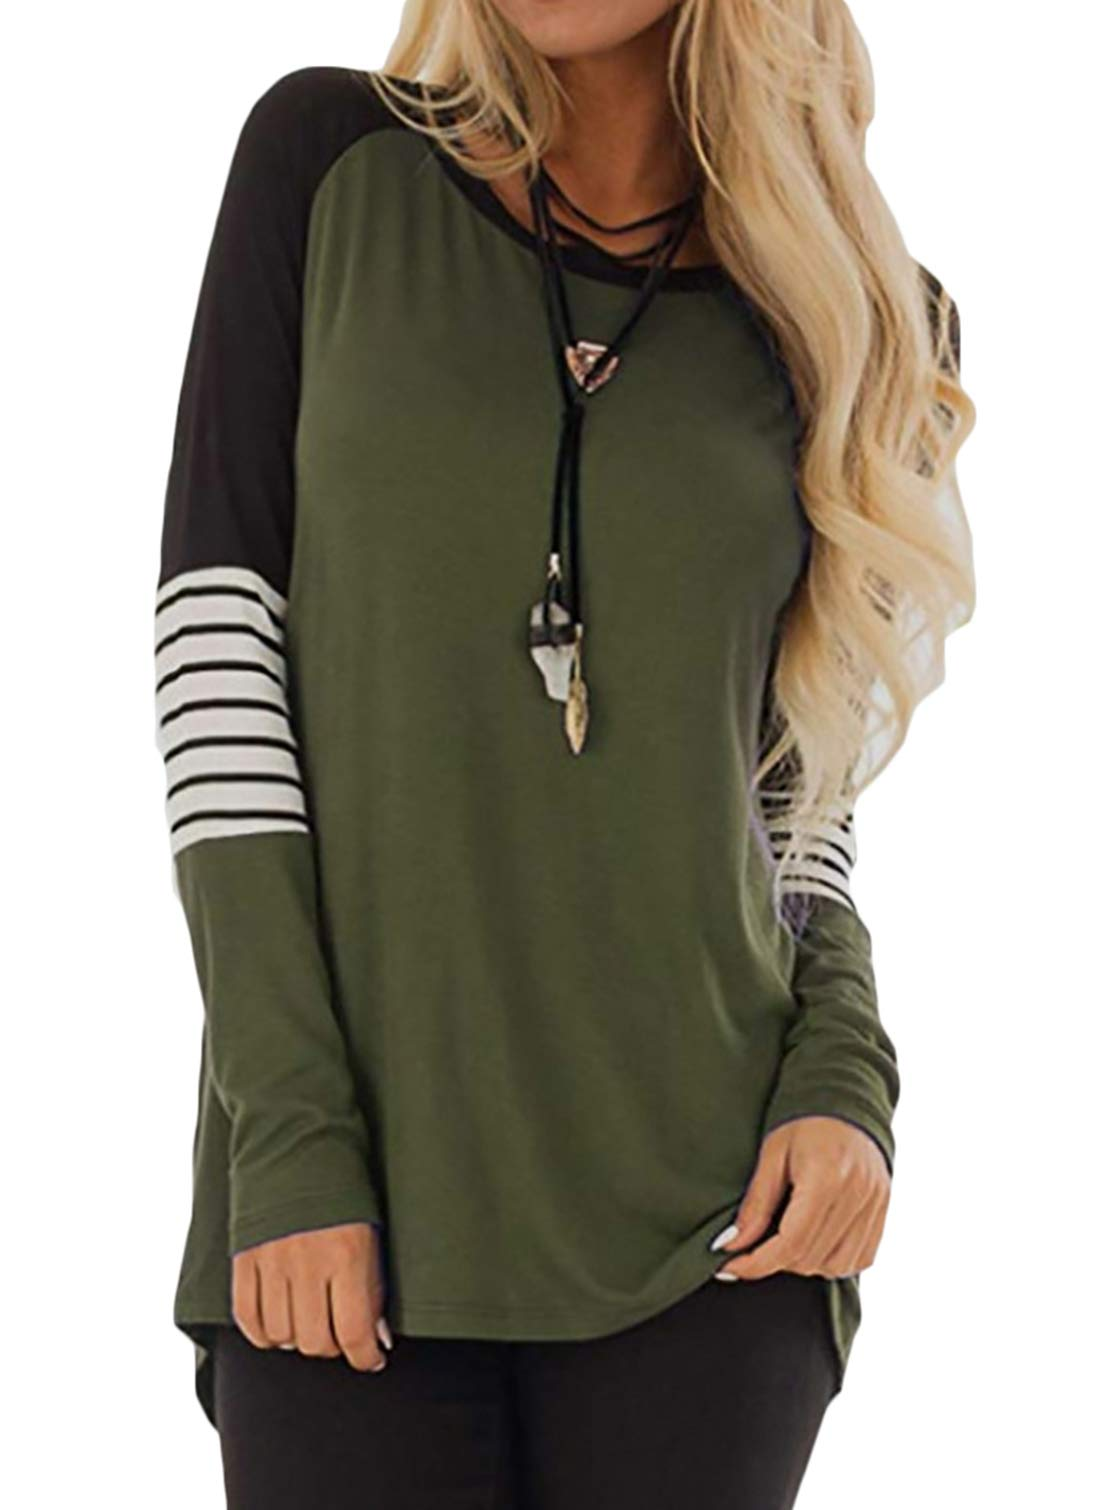 AMCLOS Womens Tops Striped Color Block Tee Shirts Casual Blouses Long Sleeve Pullover Lightweight Tunic (L, Green)